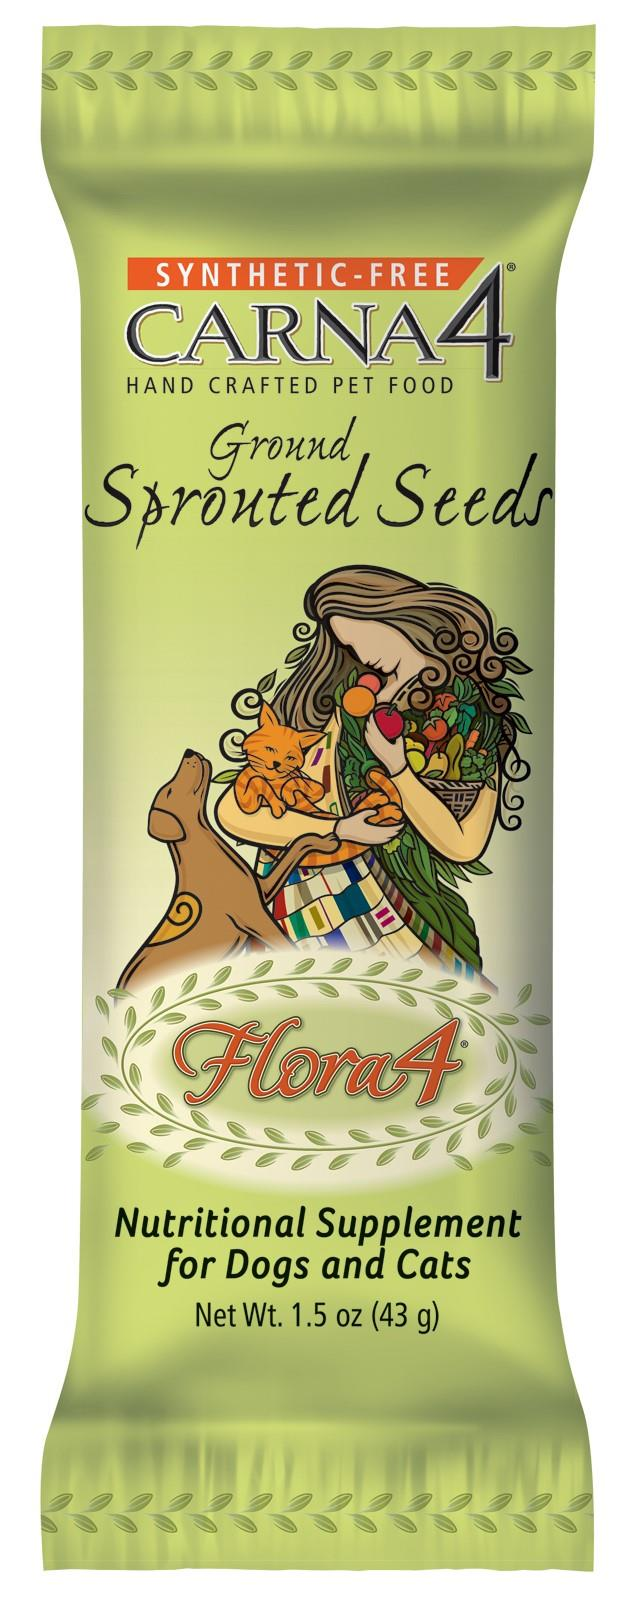 Carna4 Flora4 Ground Sprouted Seeds 1.5oz Packet